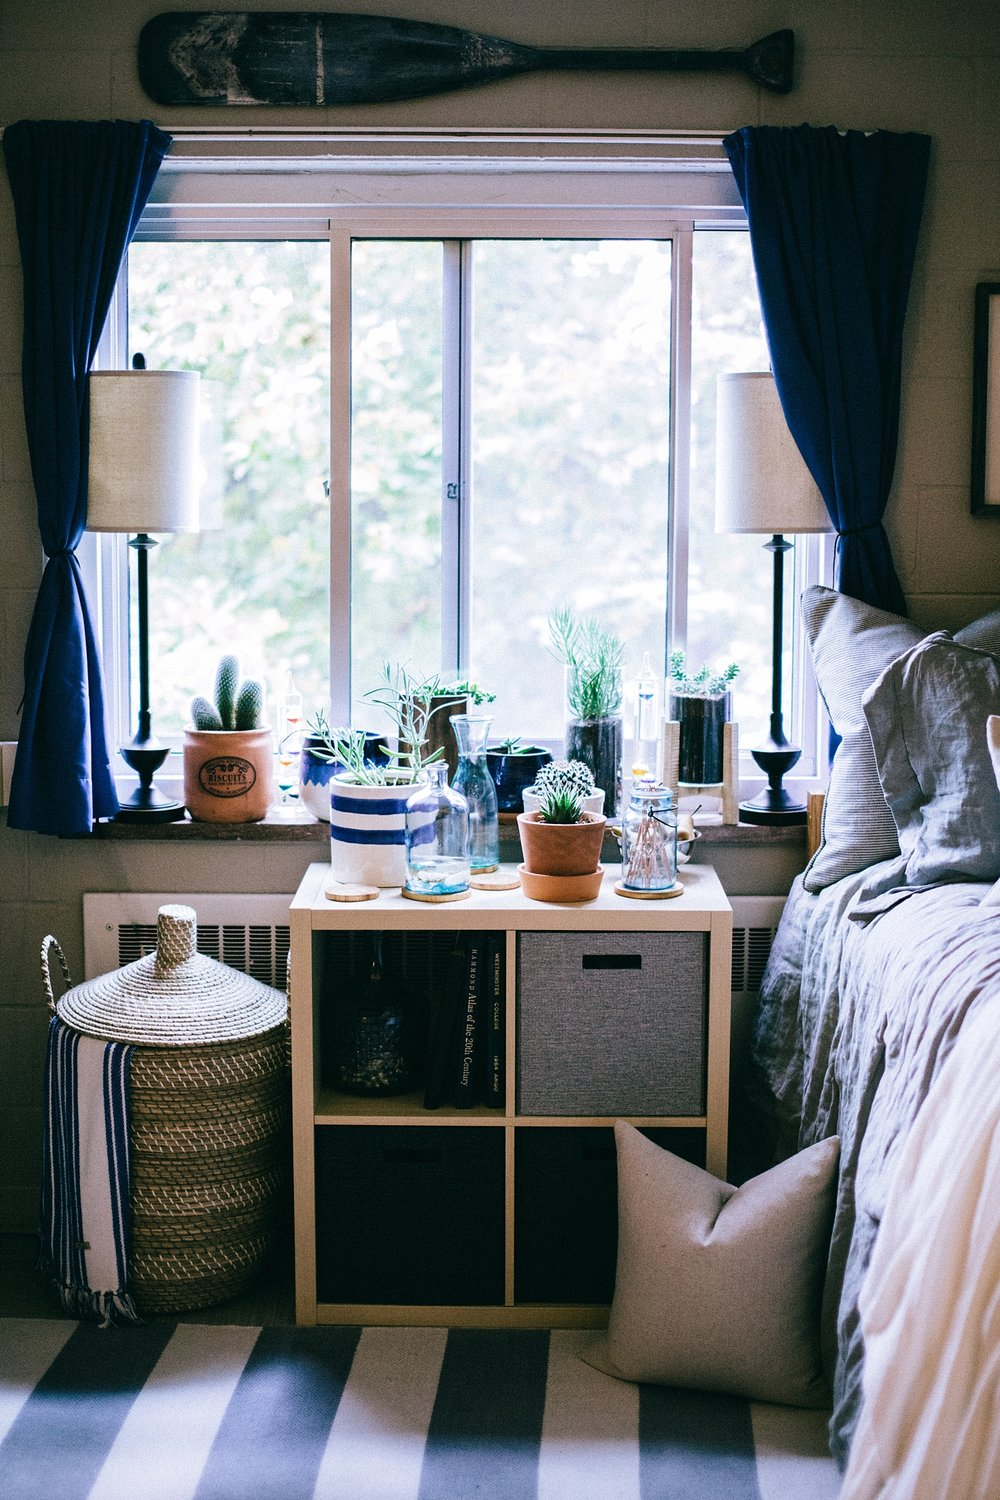 One of the biggest things for college students is finding a place to put  stuff .  Chris has found the balance between functionality and usability under his window with the  Kallax Shelf Unit from Ikea .  This piece simultaneously acts as a nightstand, storage, and plant stand.